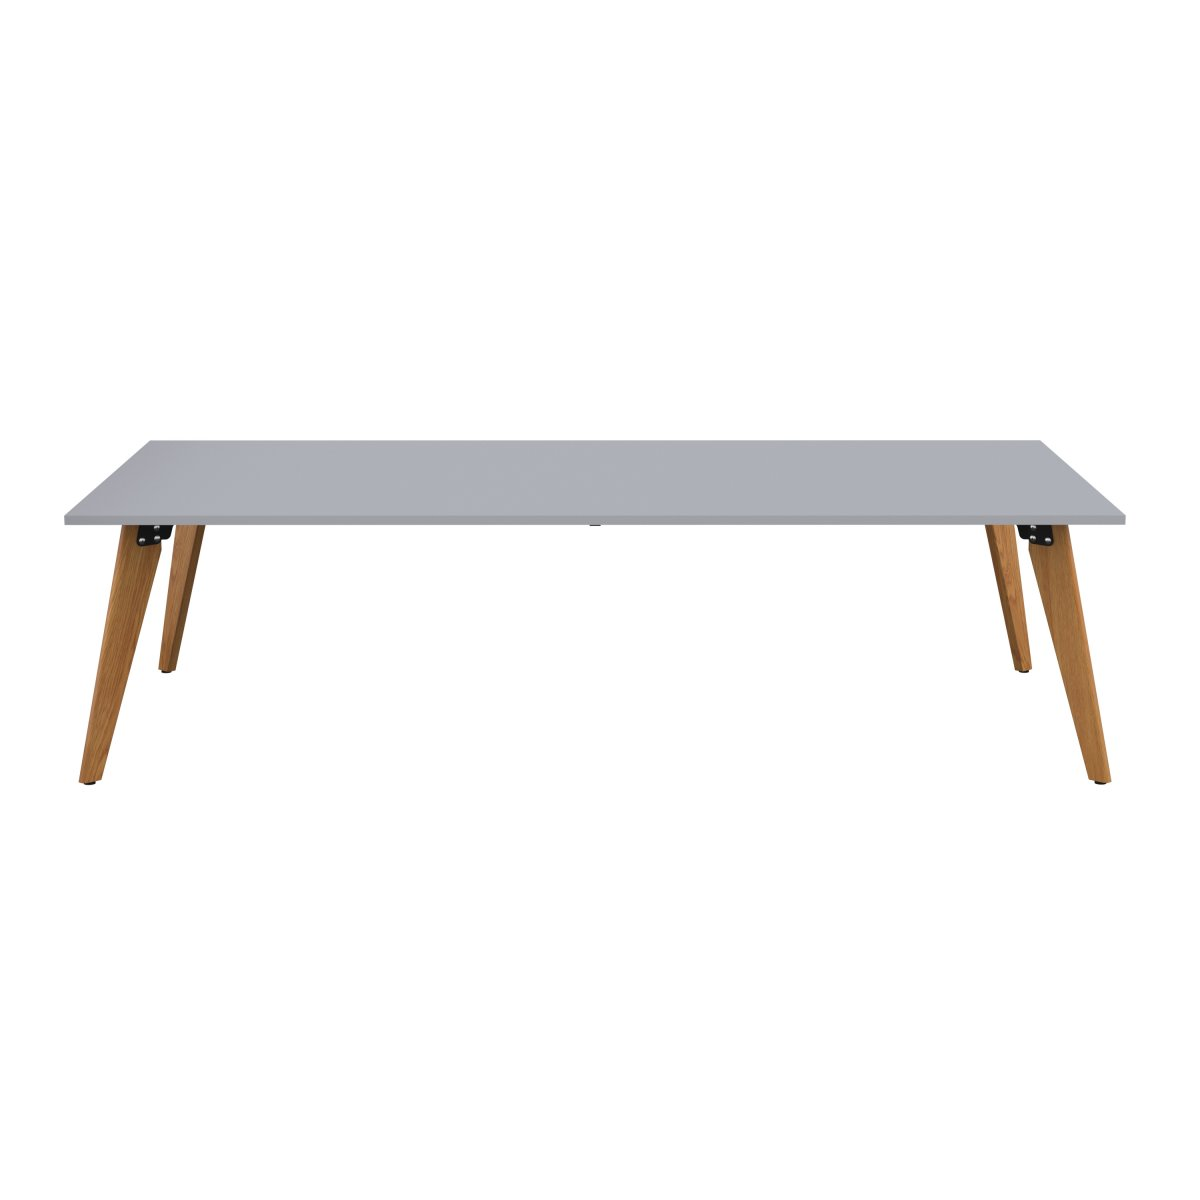 Plateau Square Table Grey 2800 X 1400 X 740H